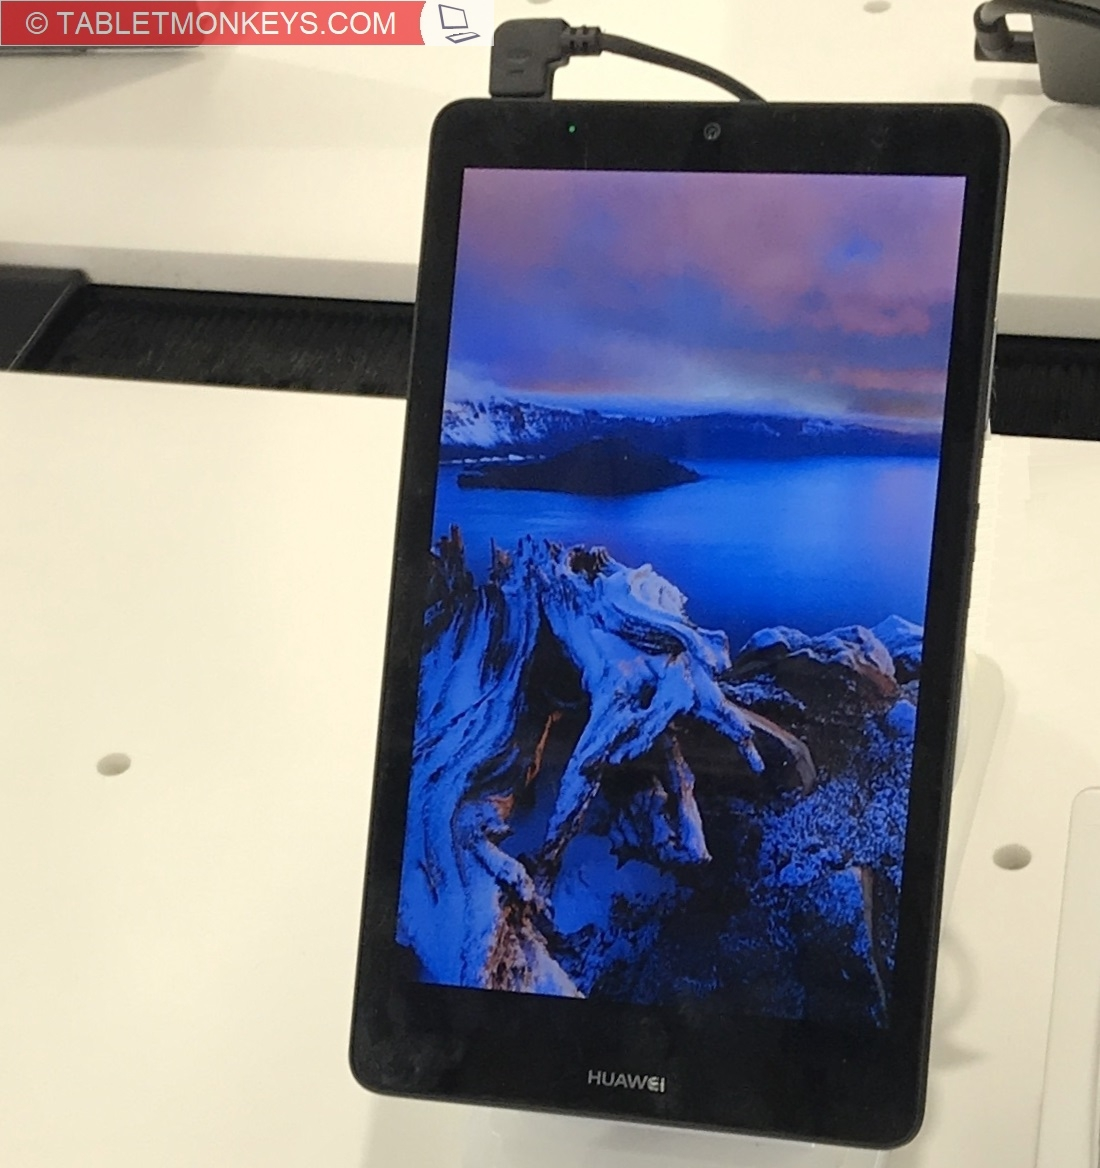 Huawei MediaPad T3 7 0 Launched In The US